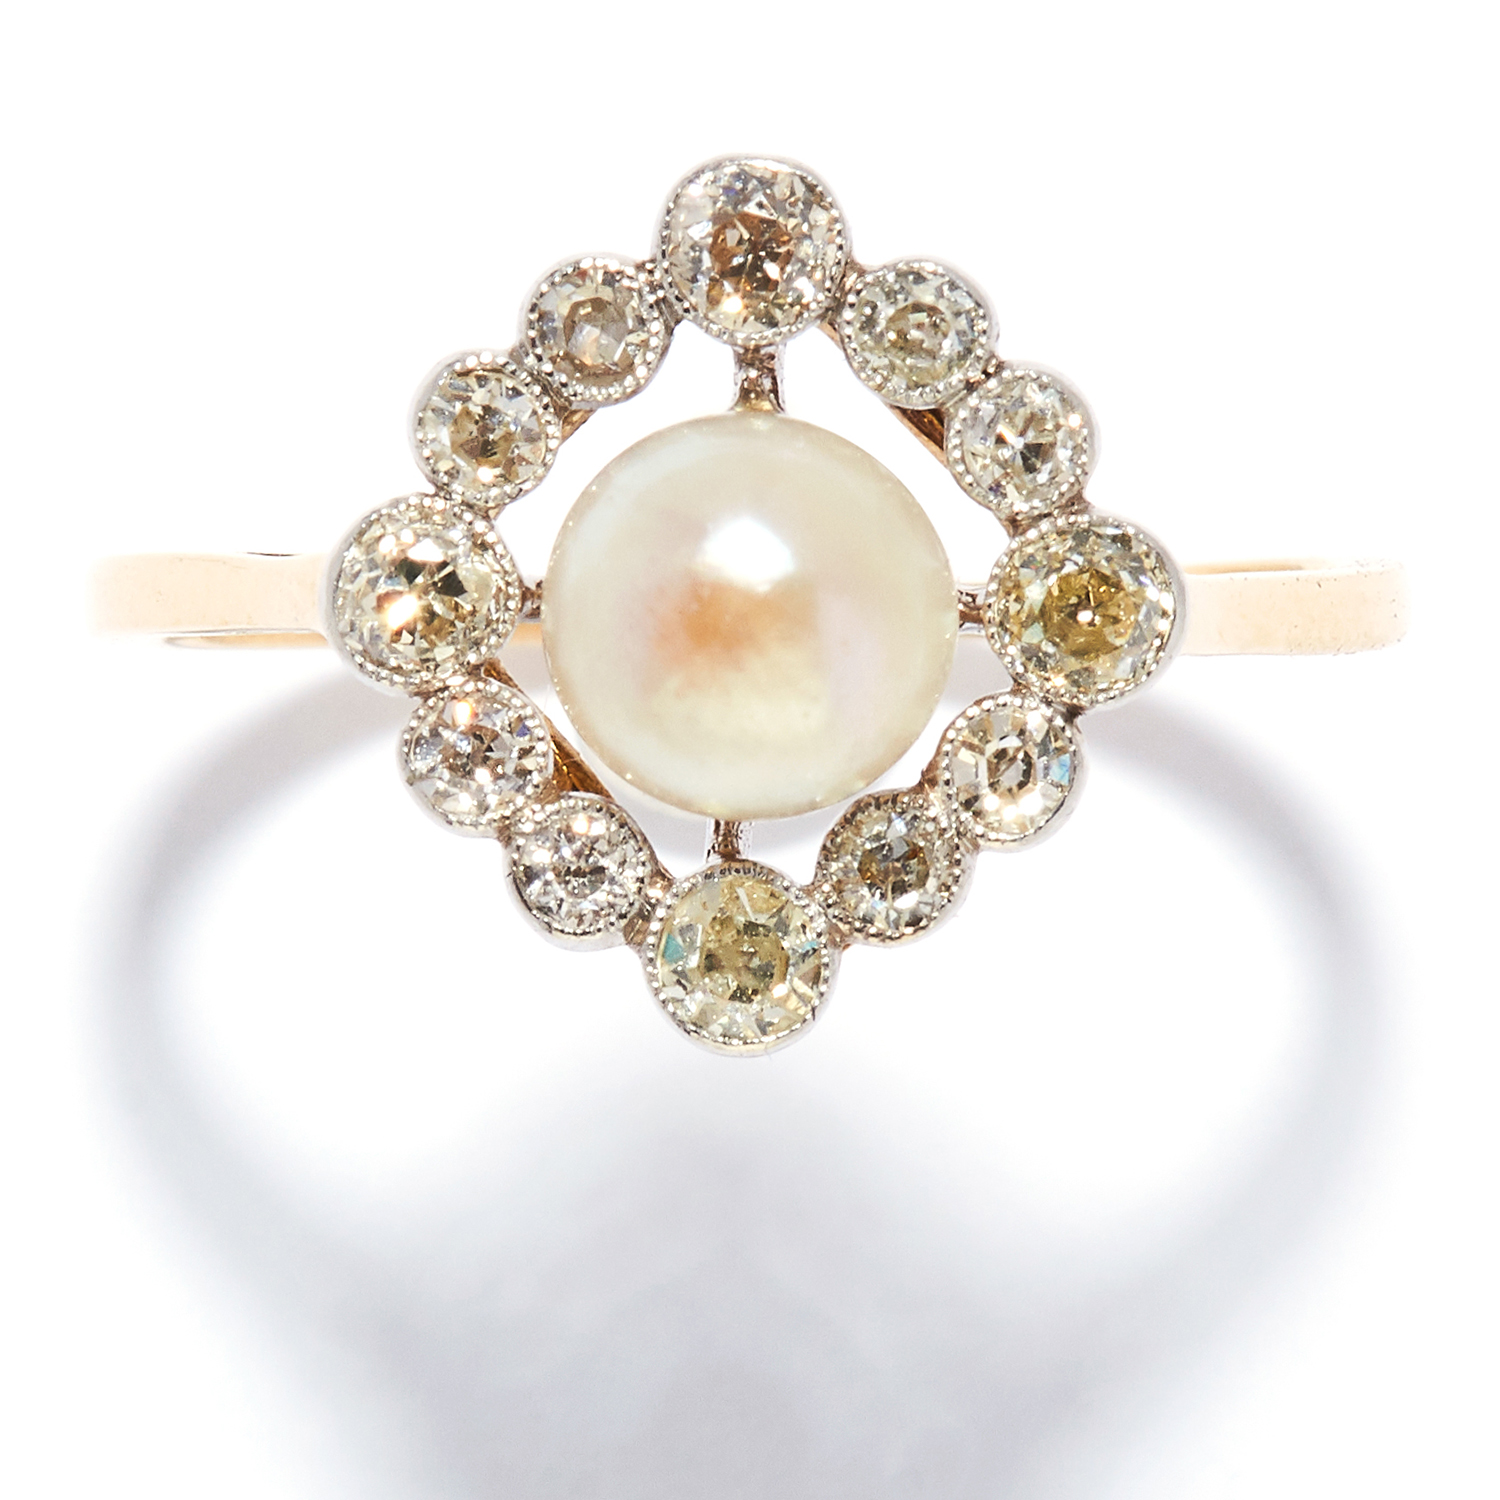 ANTIQUE PEARL AND DIAMOND DRESS RING in high carat yellow gold, set with a pearl of 6.2mm in a